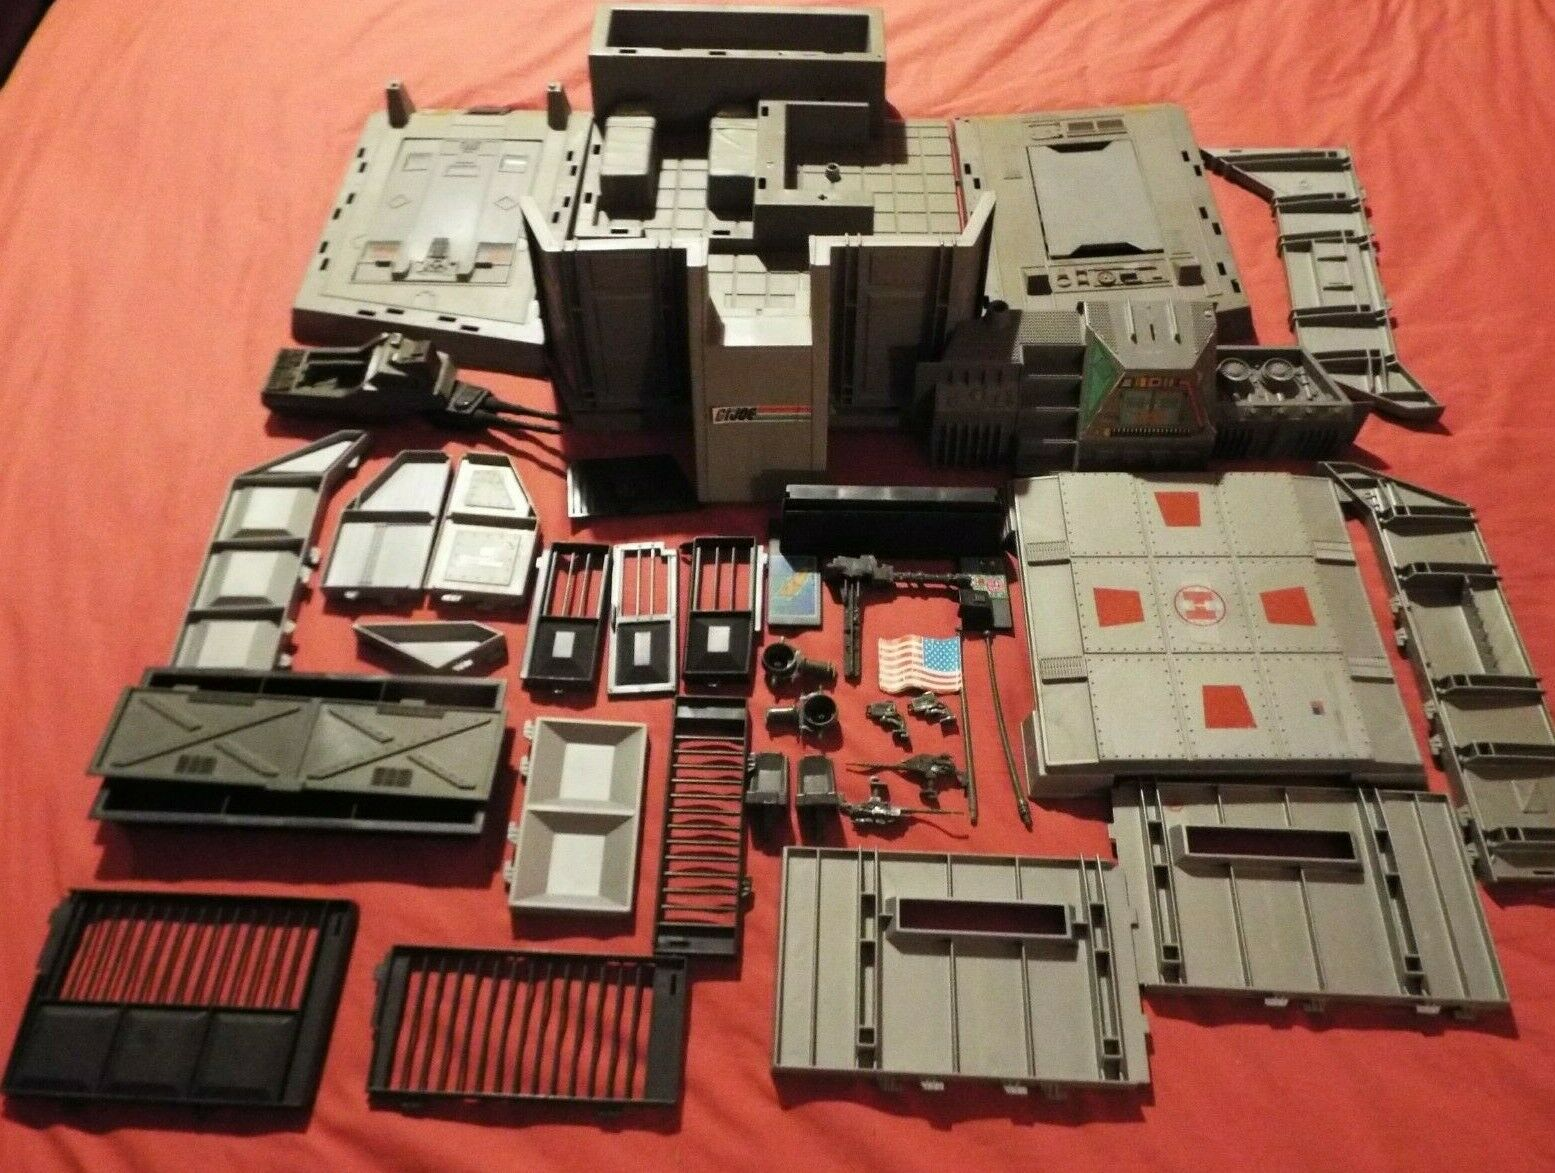 G.I.JOE, ACTION FORCE HEADQUARTERS COMMAND CENTER FROM 1983 NEAR COMPLETE